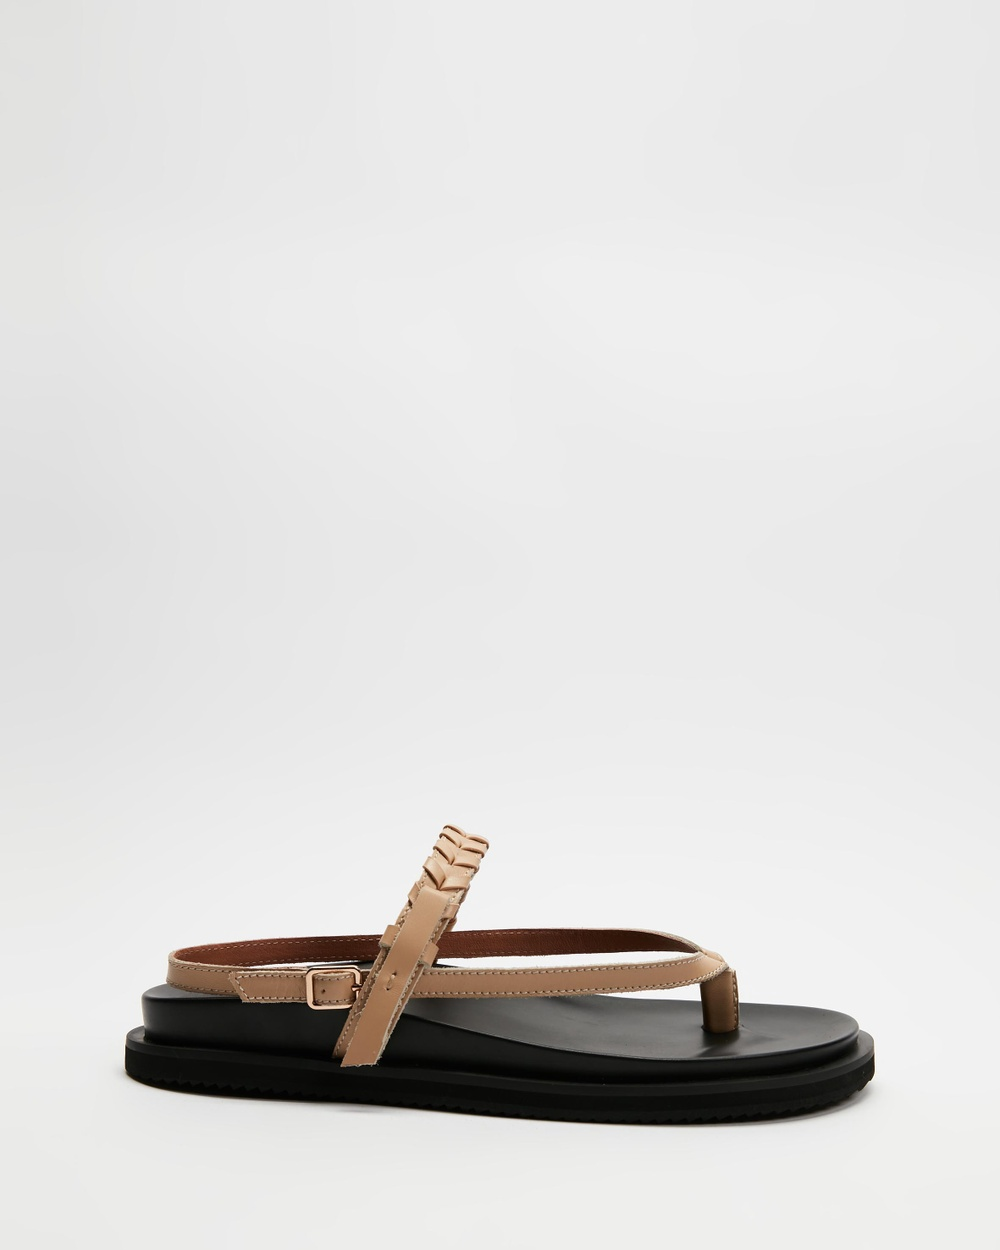 Alias Mae Sommer Sandals Natural Leather